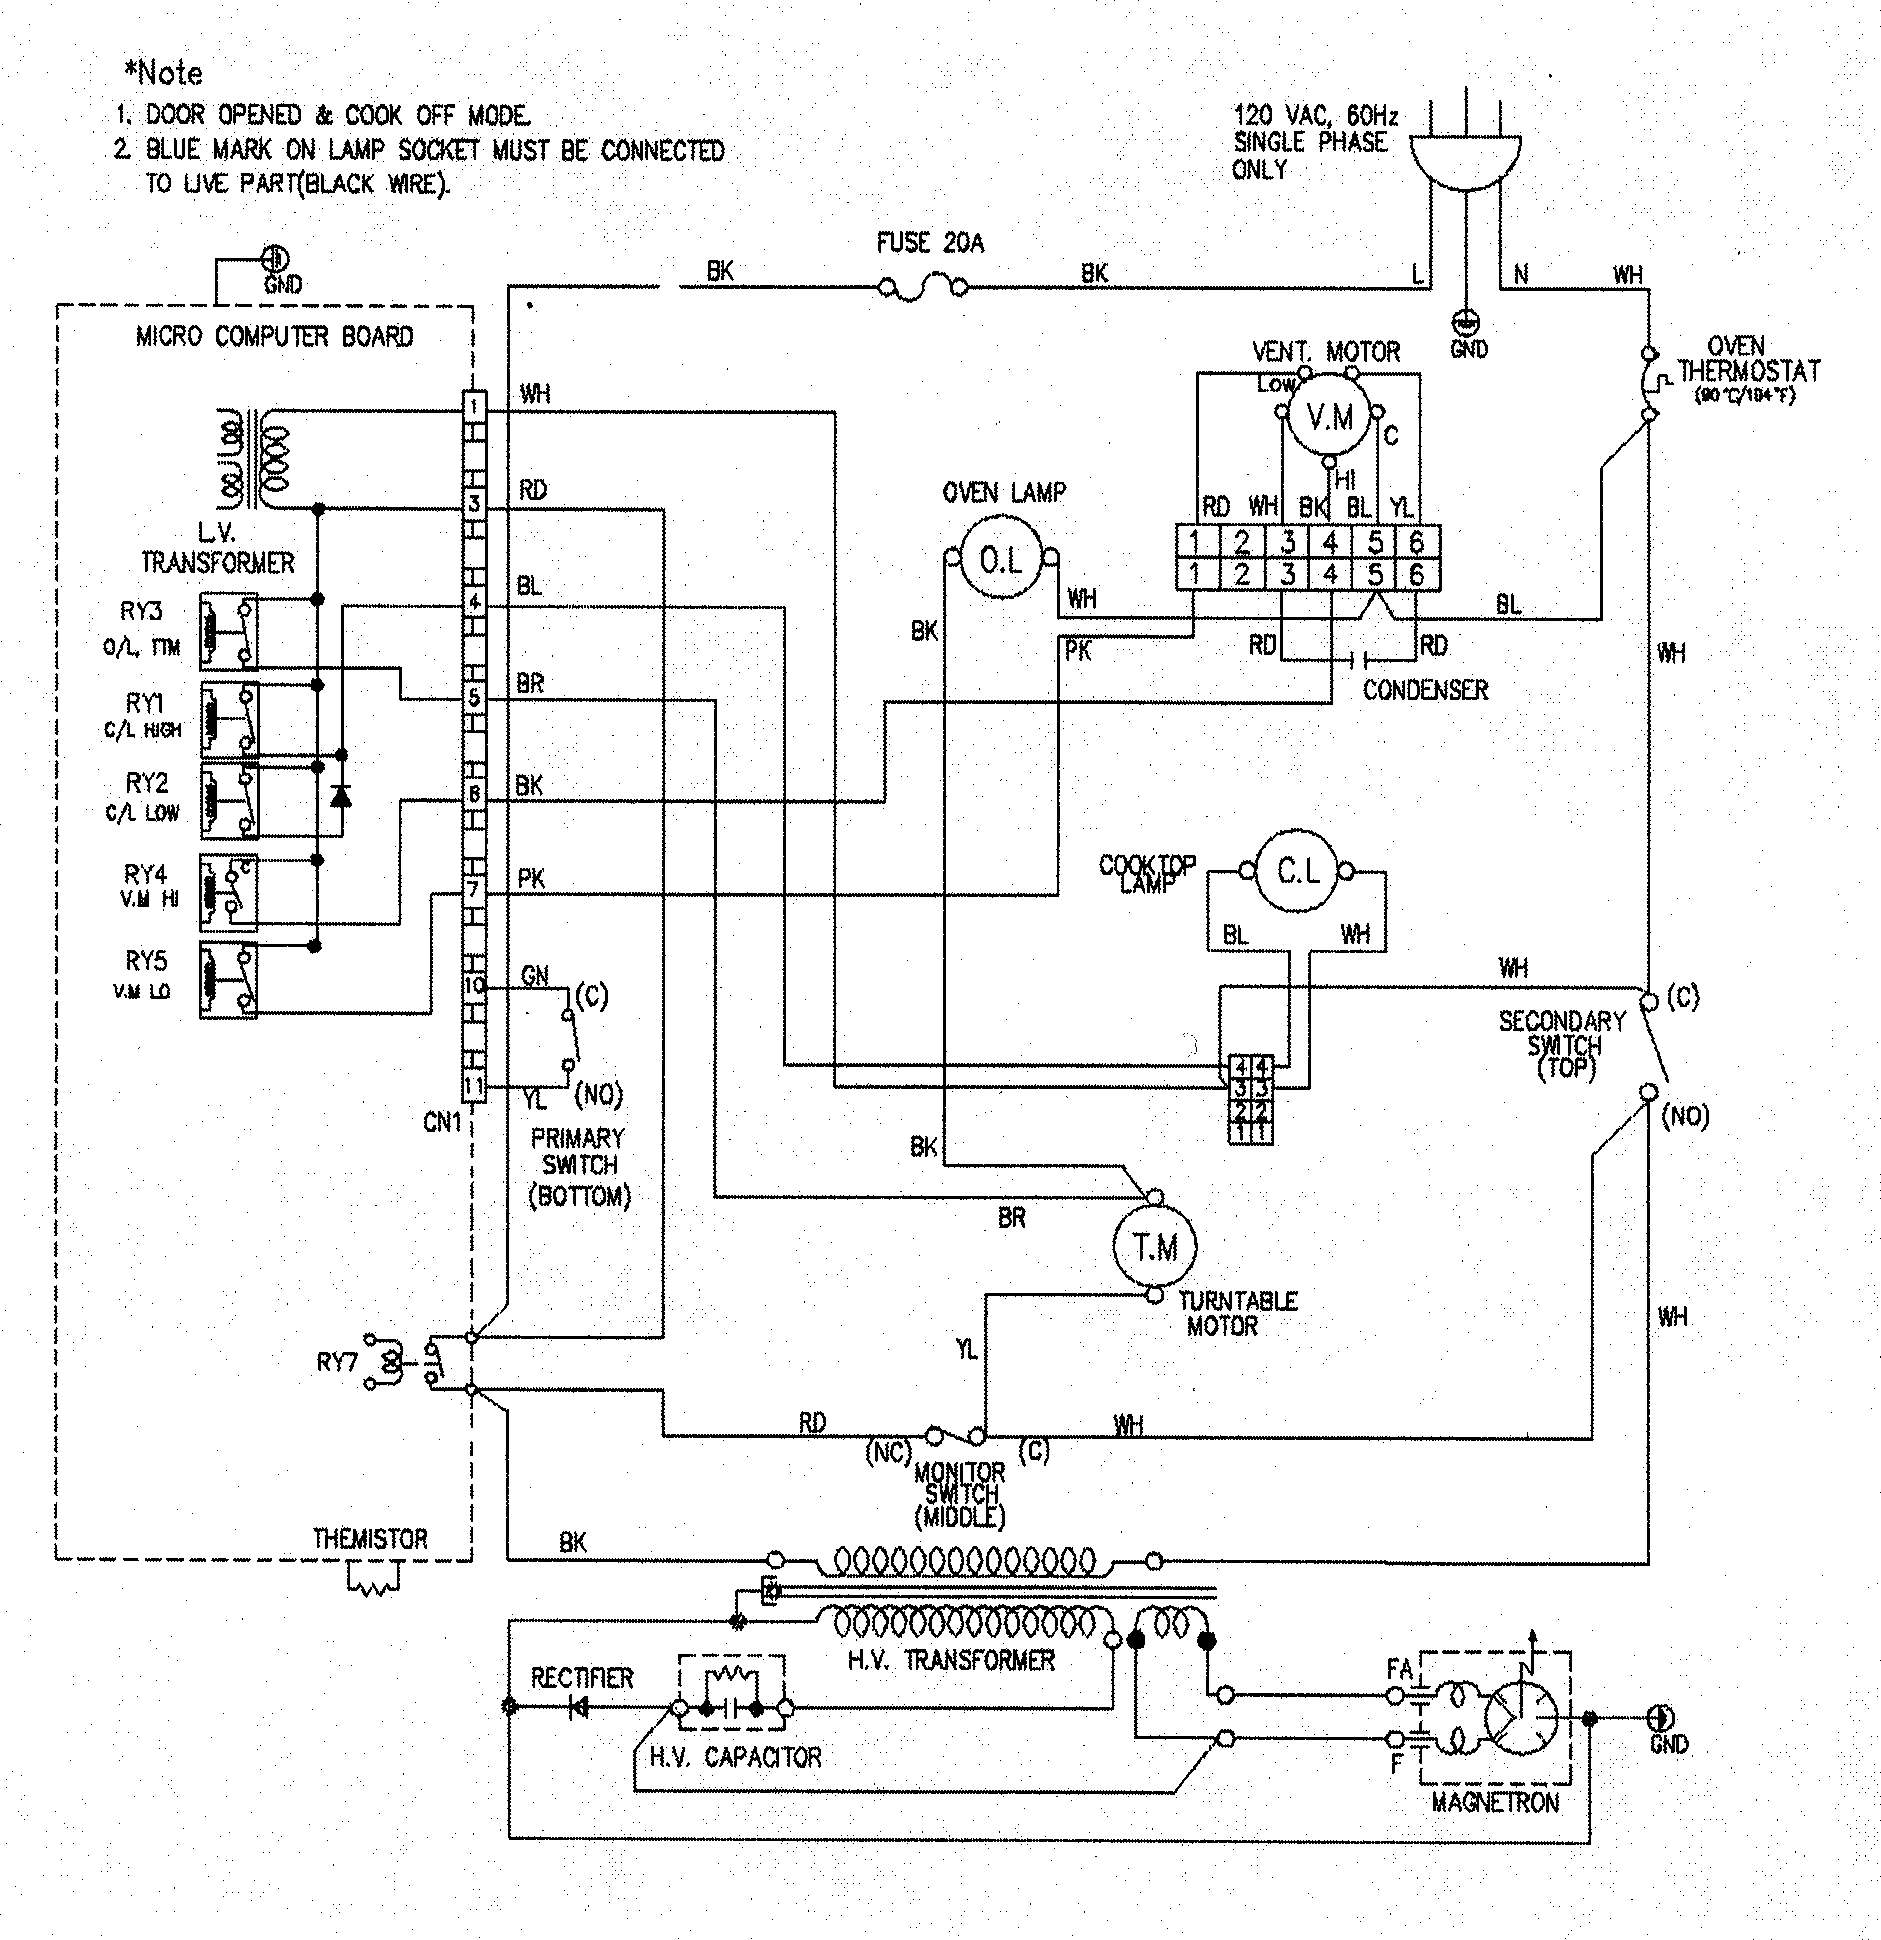 medium resolution of microwave schematic wiring diagram centredownload microwave ovens schematic diagrams and service manuals s